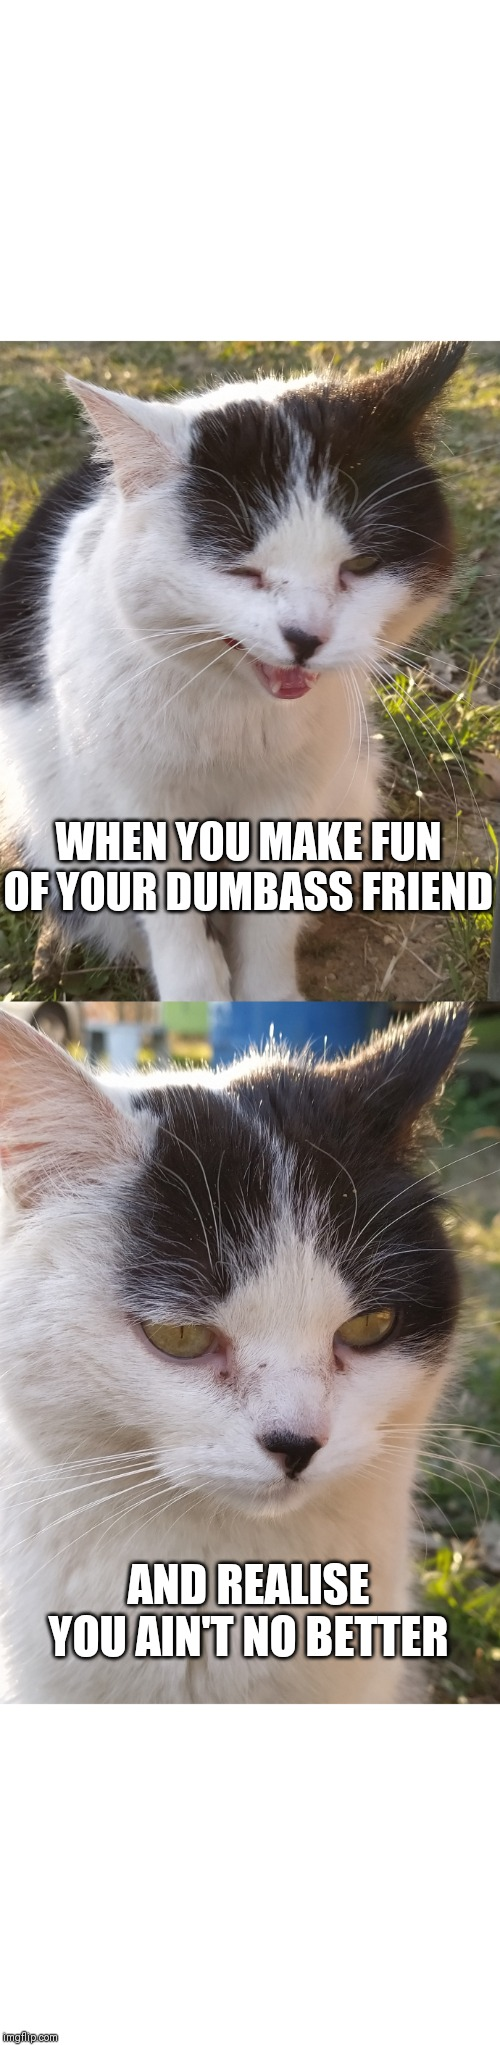 Laughing cat |  WHEN YOU MAKE FUN OF YOUR DUMBASS FRIEND; AND REALISE YOU AIN'T NO BETTER | image tagged in funny cat memes,laughing,moody,dumbass,friends | made w/ Imgflip meme maker